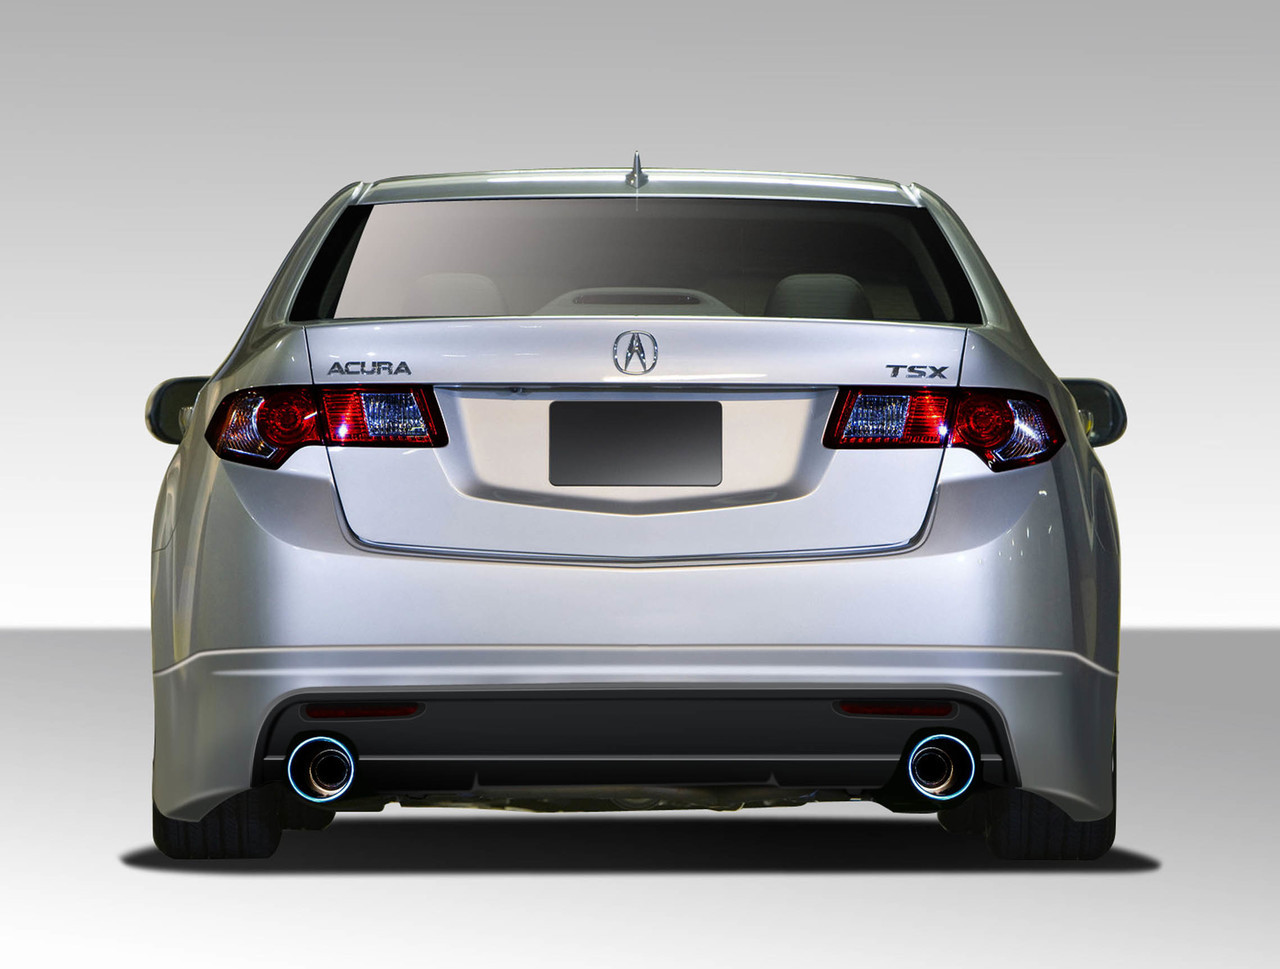 free shipping on duraflex 09 10 acura tsx type m rear lip under rh semotors com 2005 Acura TSX Manual Slammed Slammed Acura TSX 2005 Black